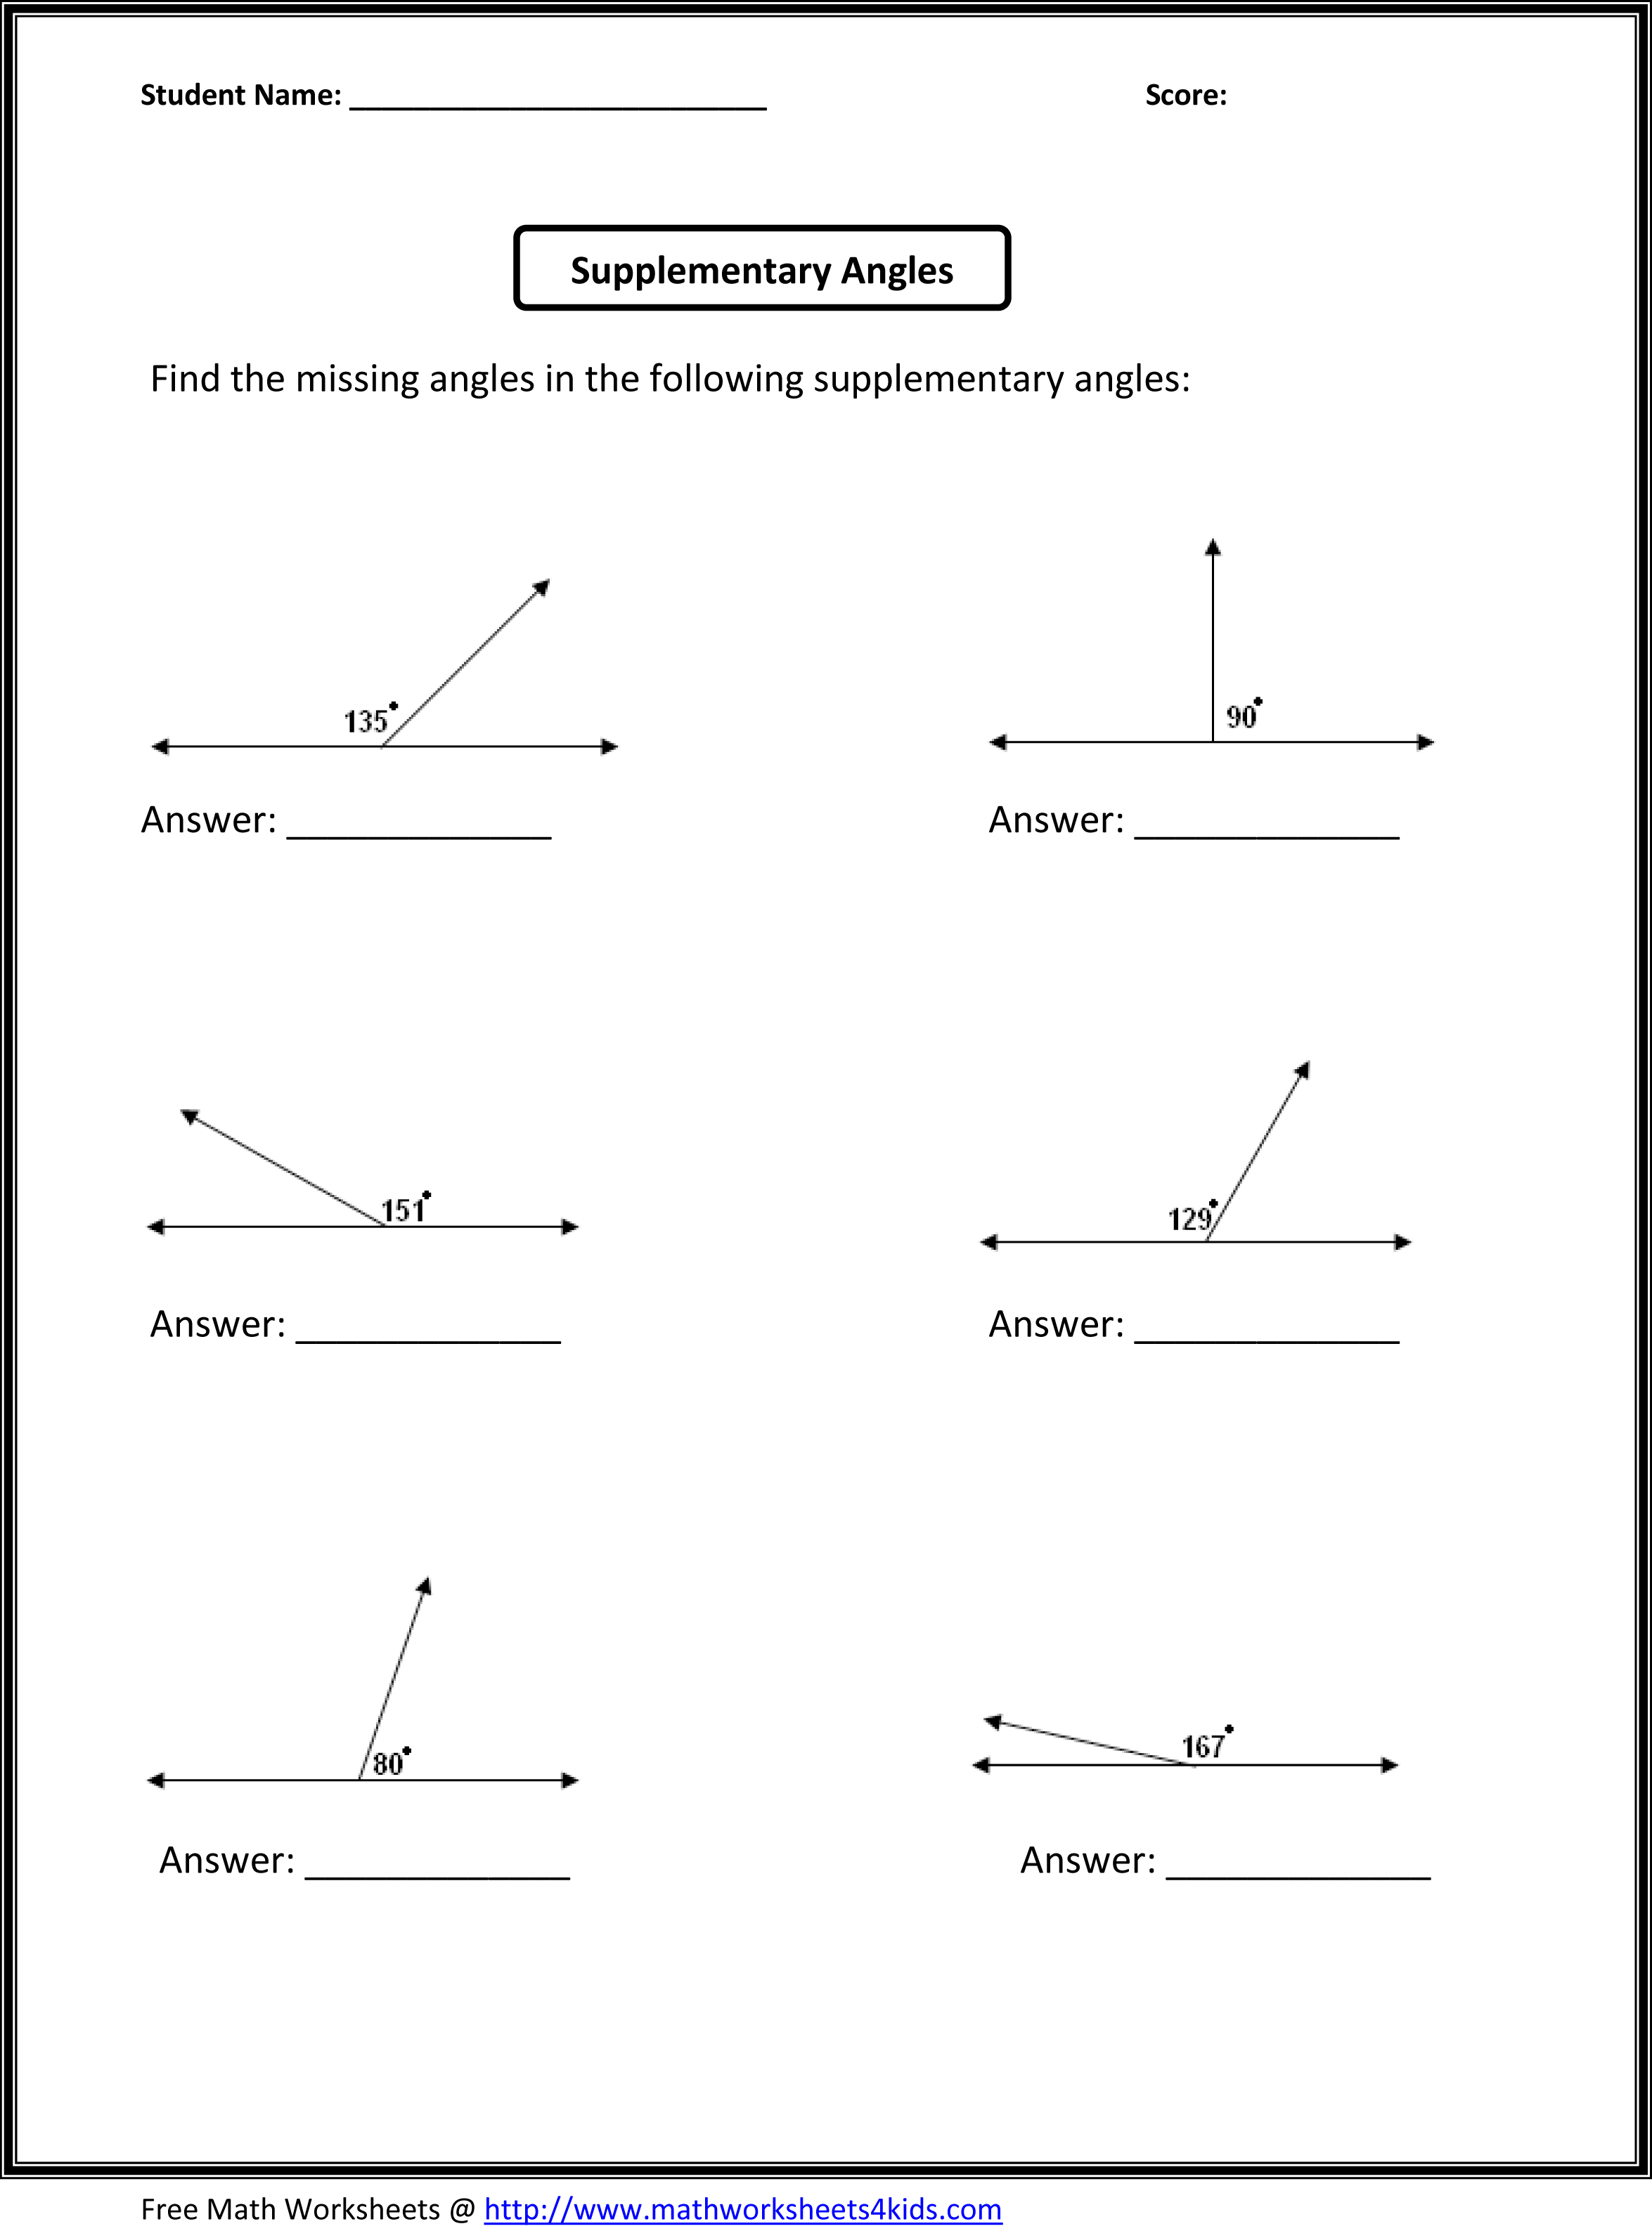 Printables Math Worksheets For 6th Grade Free Printable 6th grade math worksheets online christmas for free printable third value absolute based on basic math